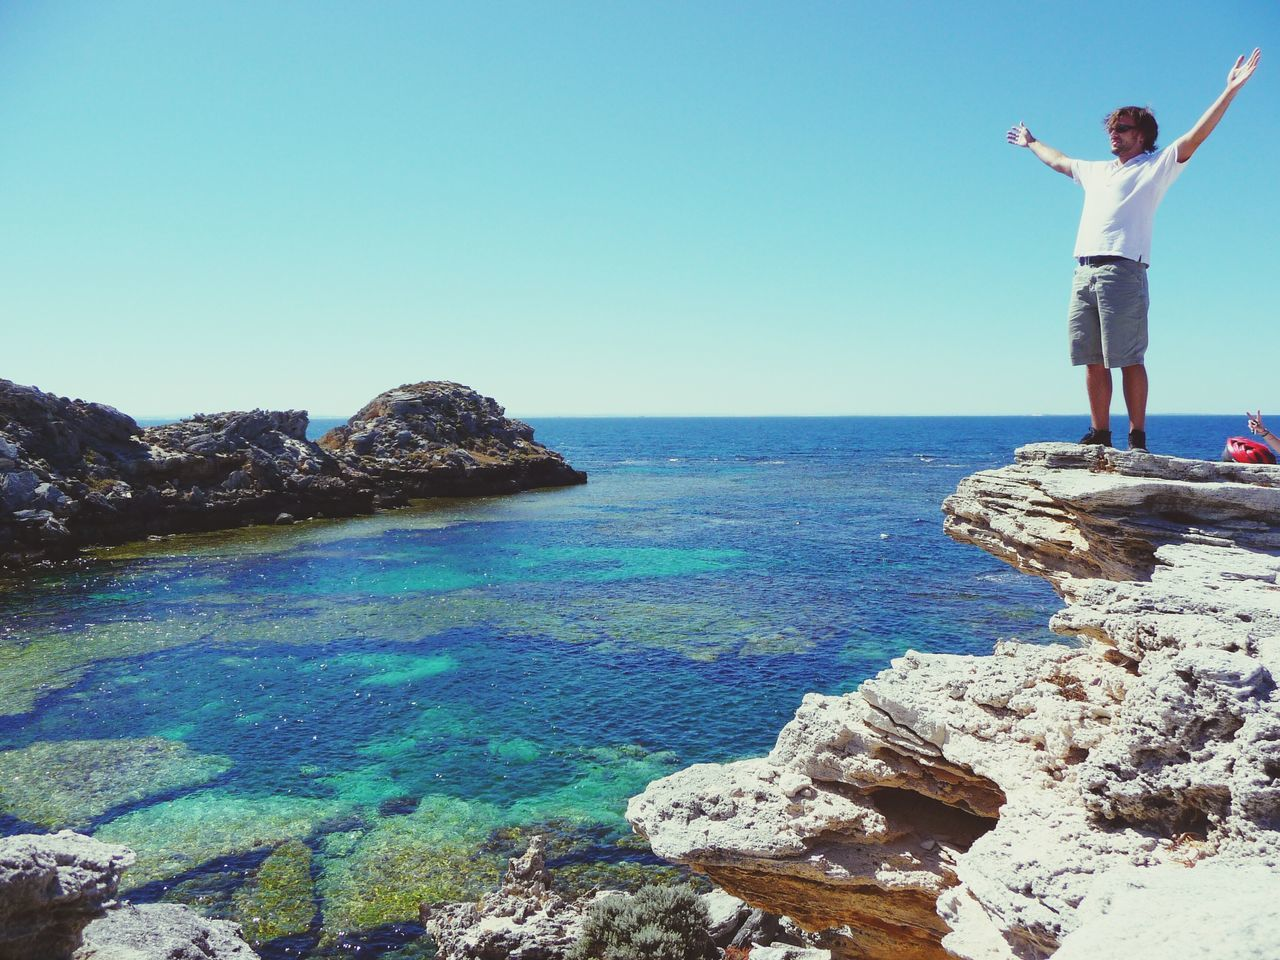 Man With Arms Outstretched Standing On Top Of Rock Formation At Sea Shore